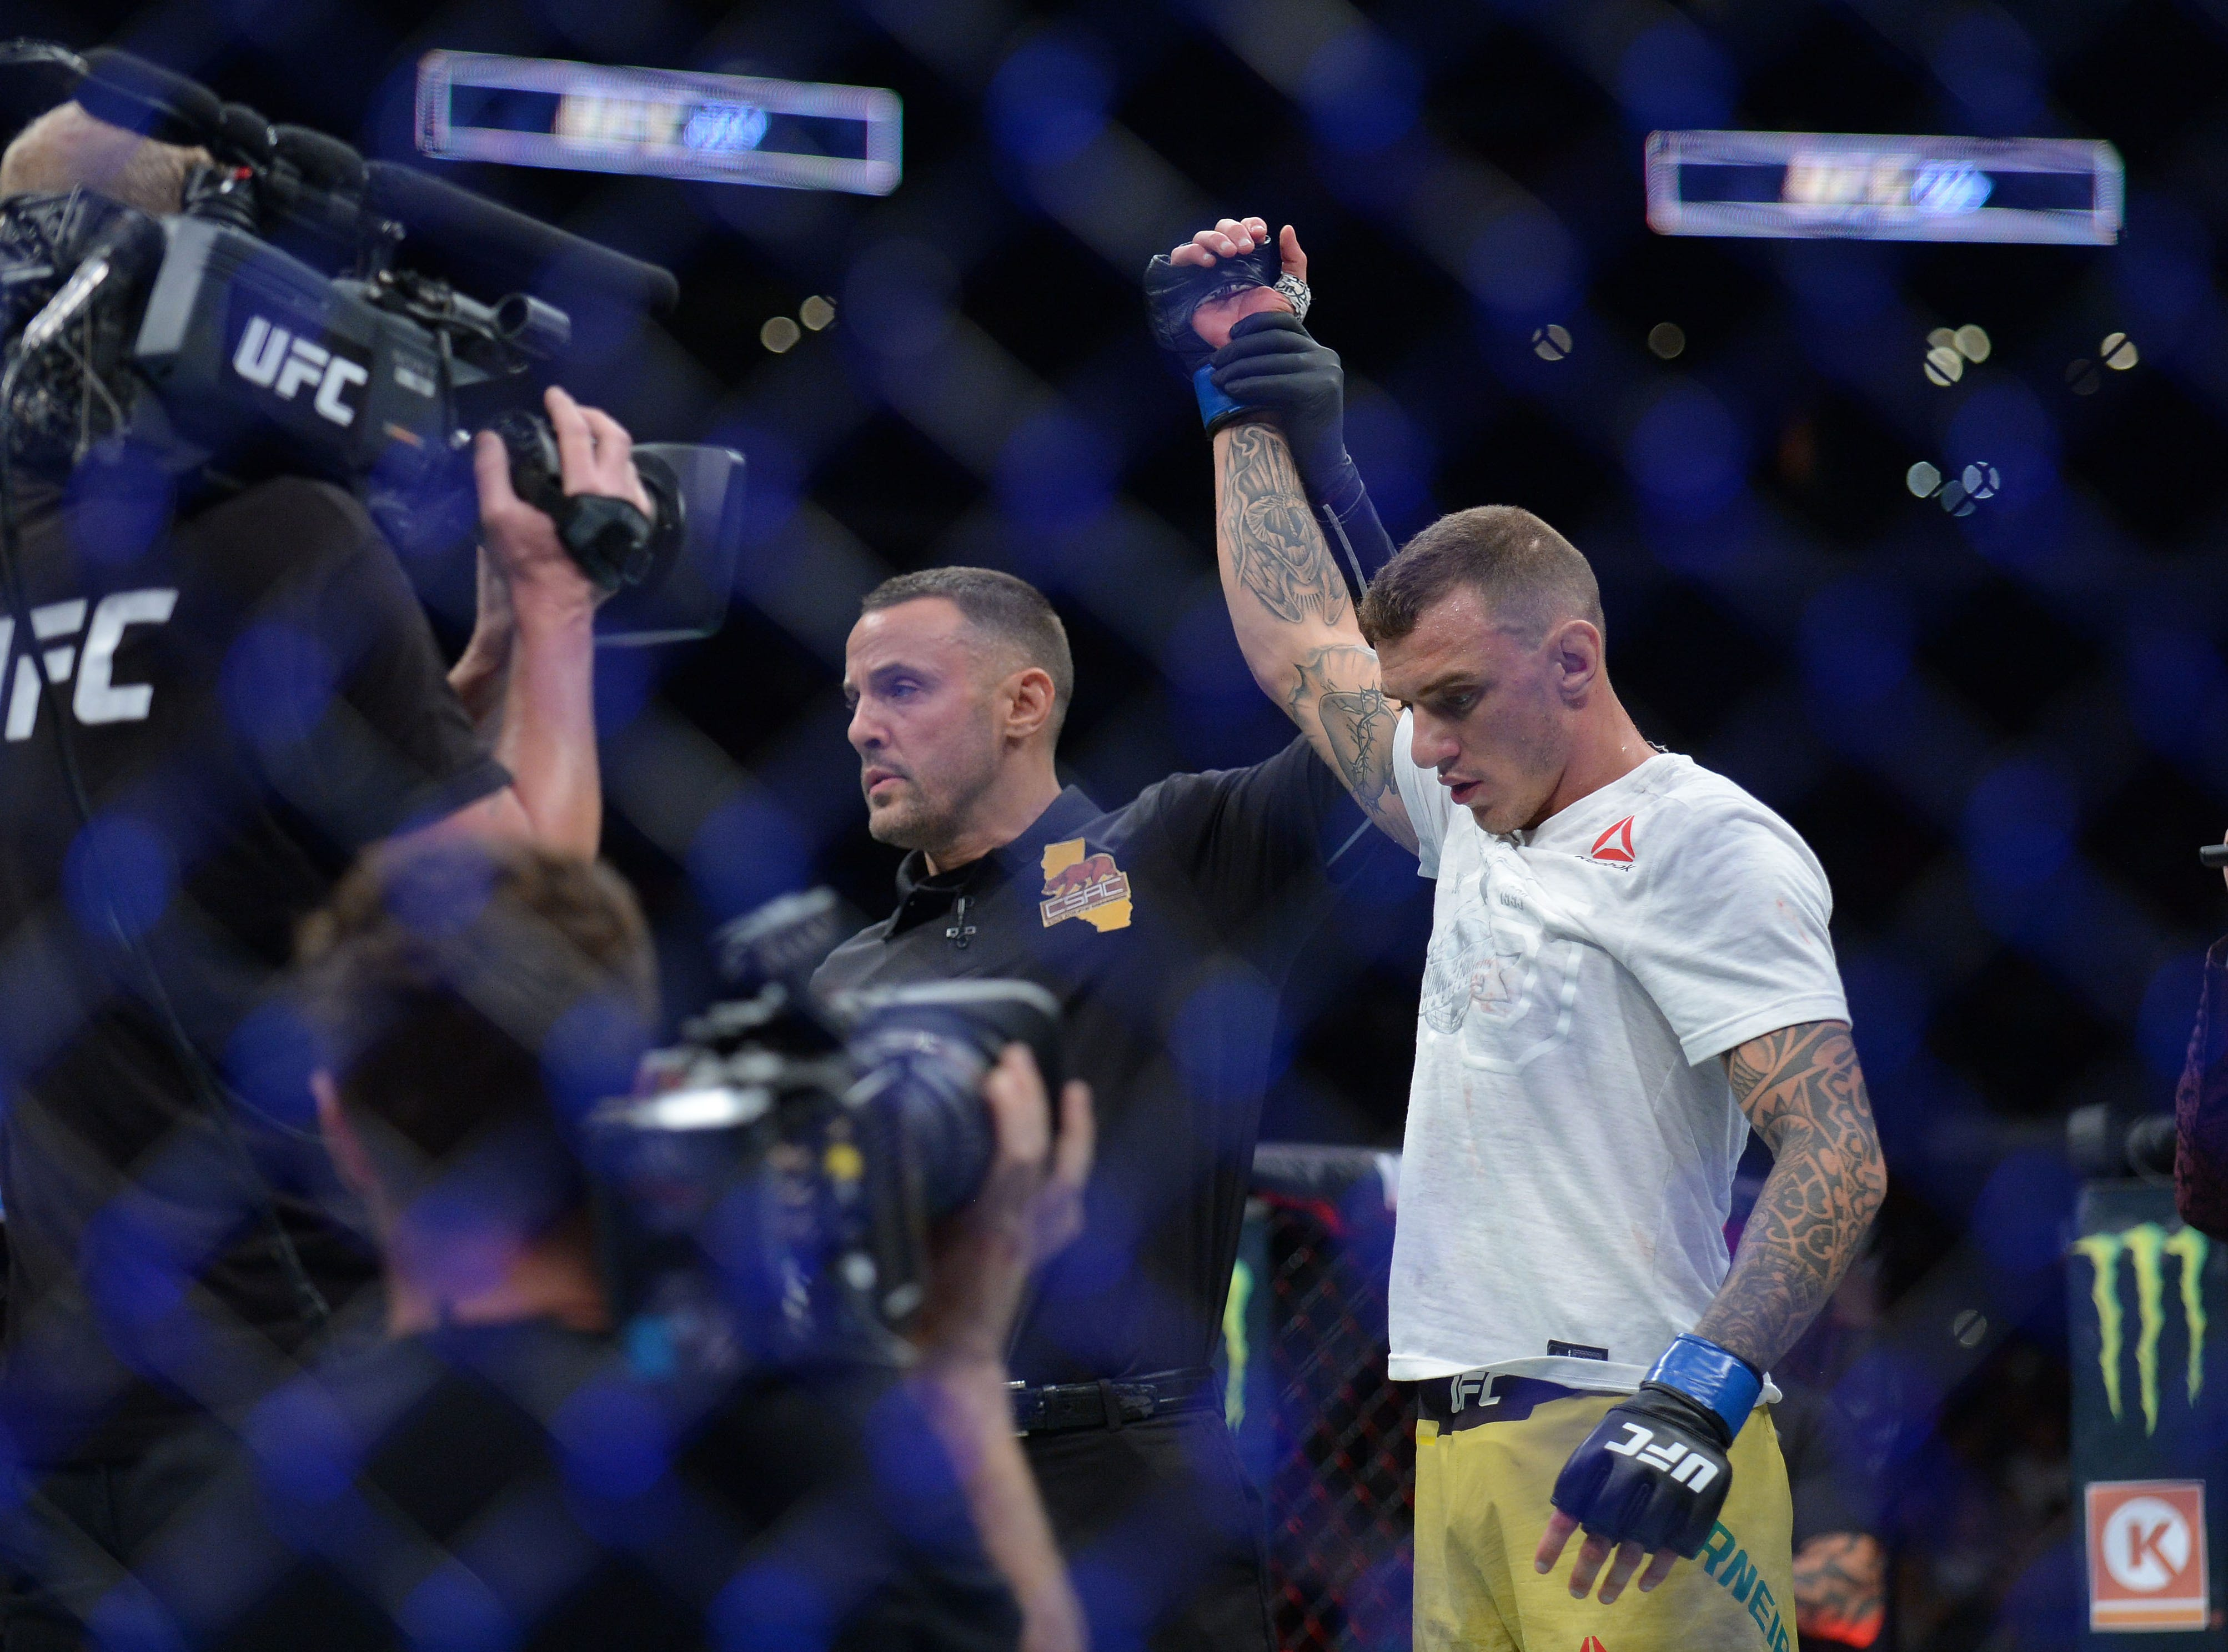 Renato Moicano is declared the winner by submission against Cub Swanson during UFC 227 at Staples Center.